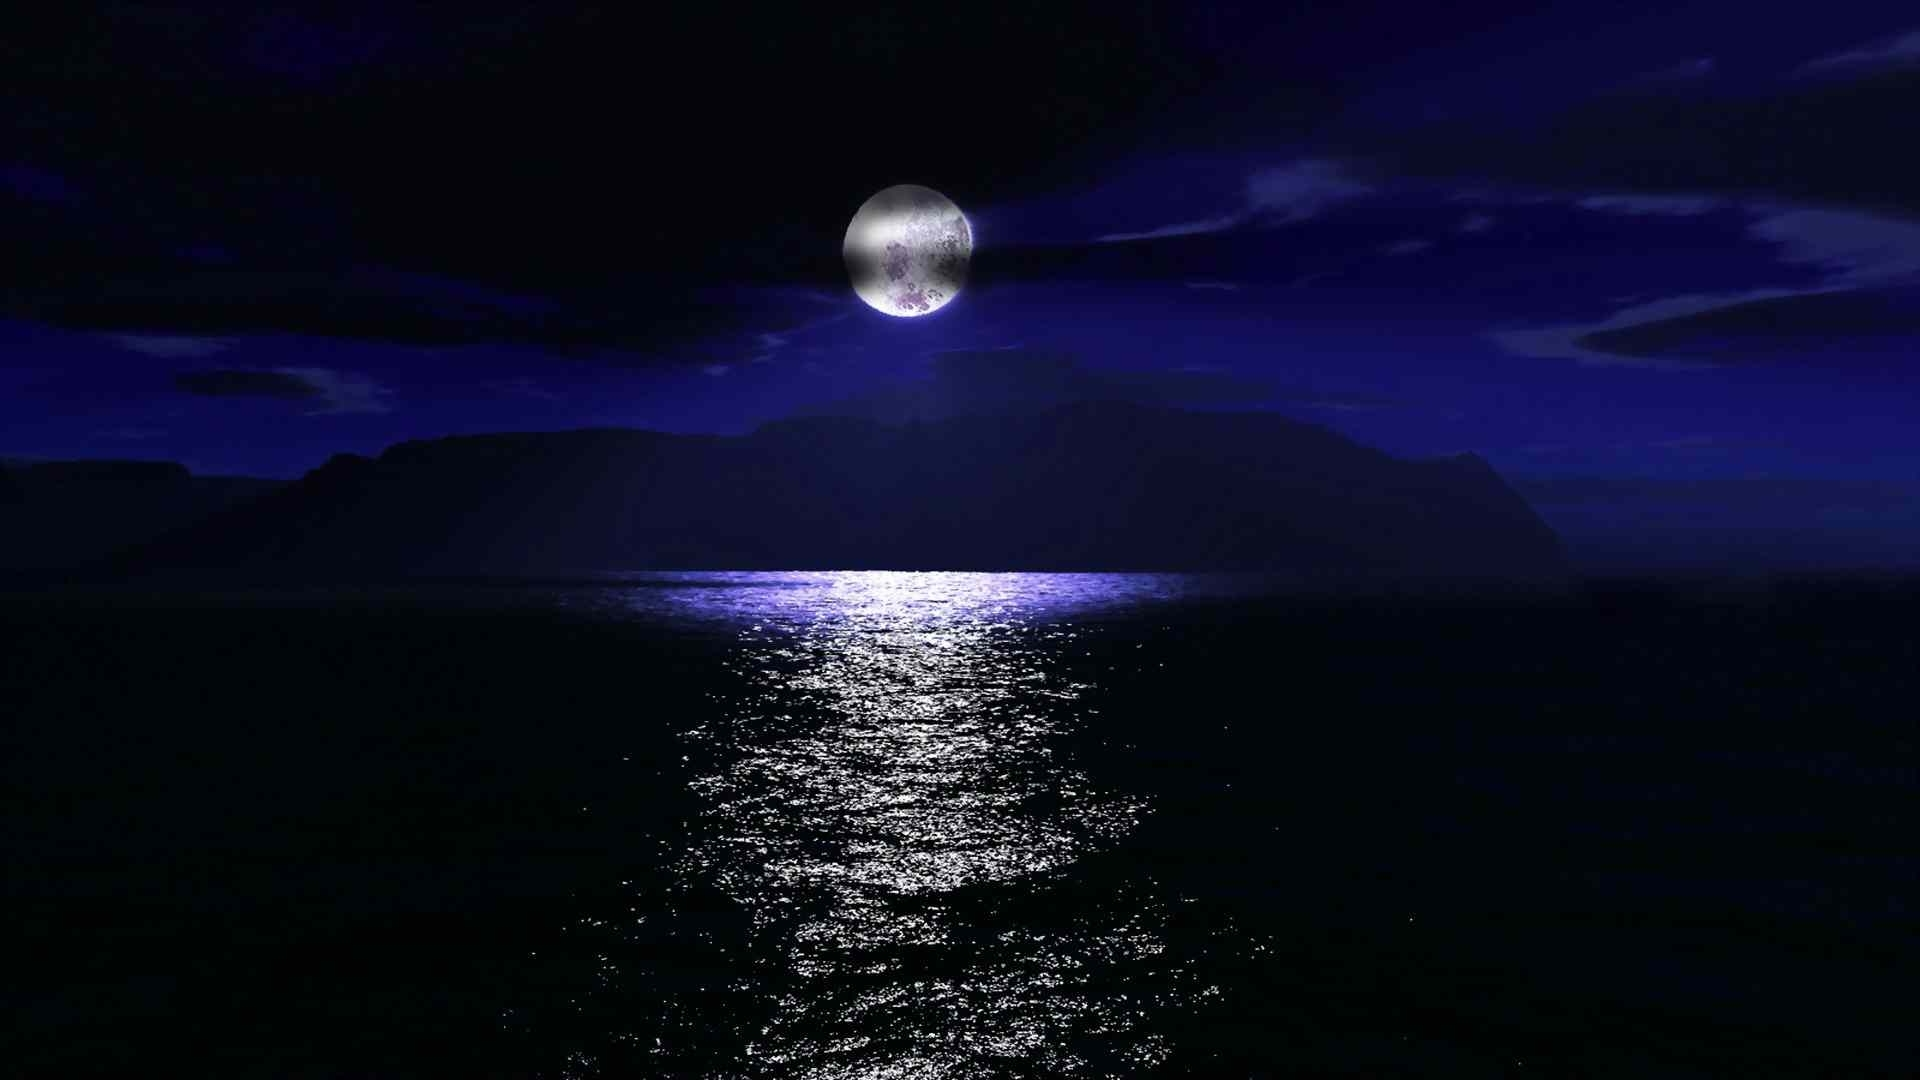 images of the moon at night wallpaper